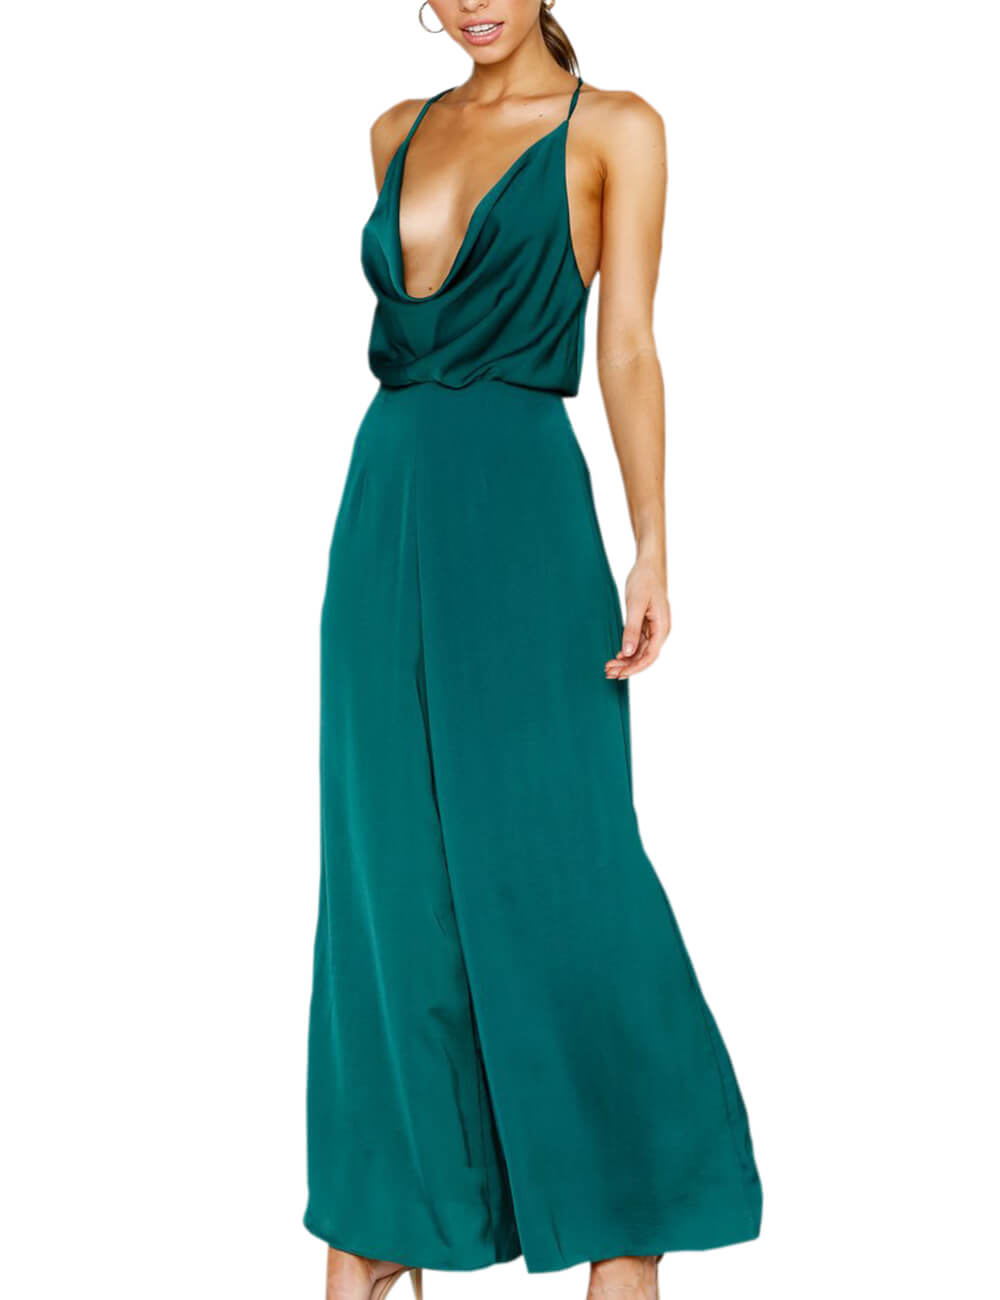 Women's Sexy Sleeveless Draped Wide Leg Outfit Satin Spaghetti Strap Backless Summer Loose Jumpsuit Rompers